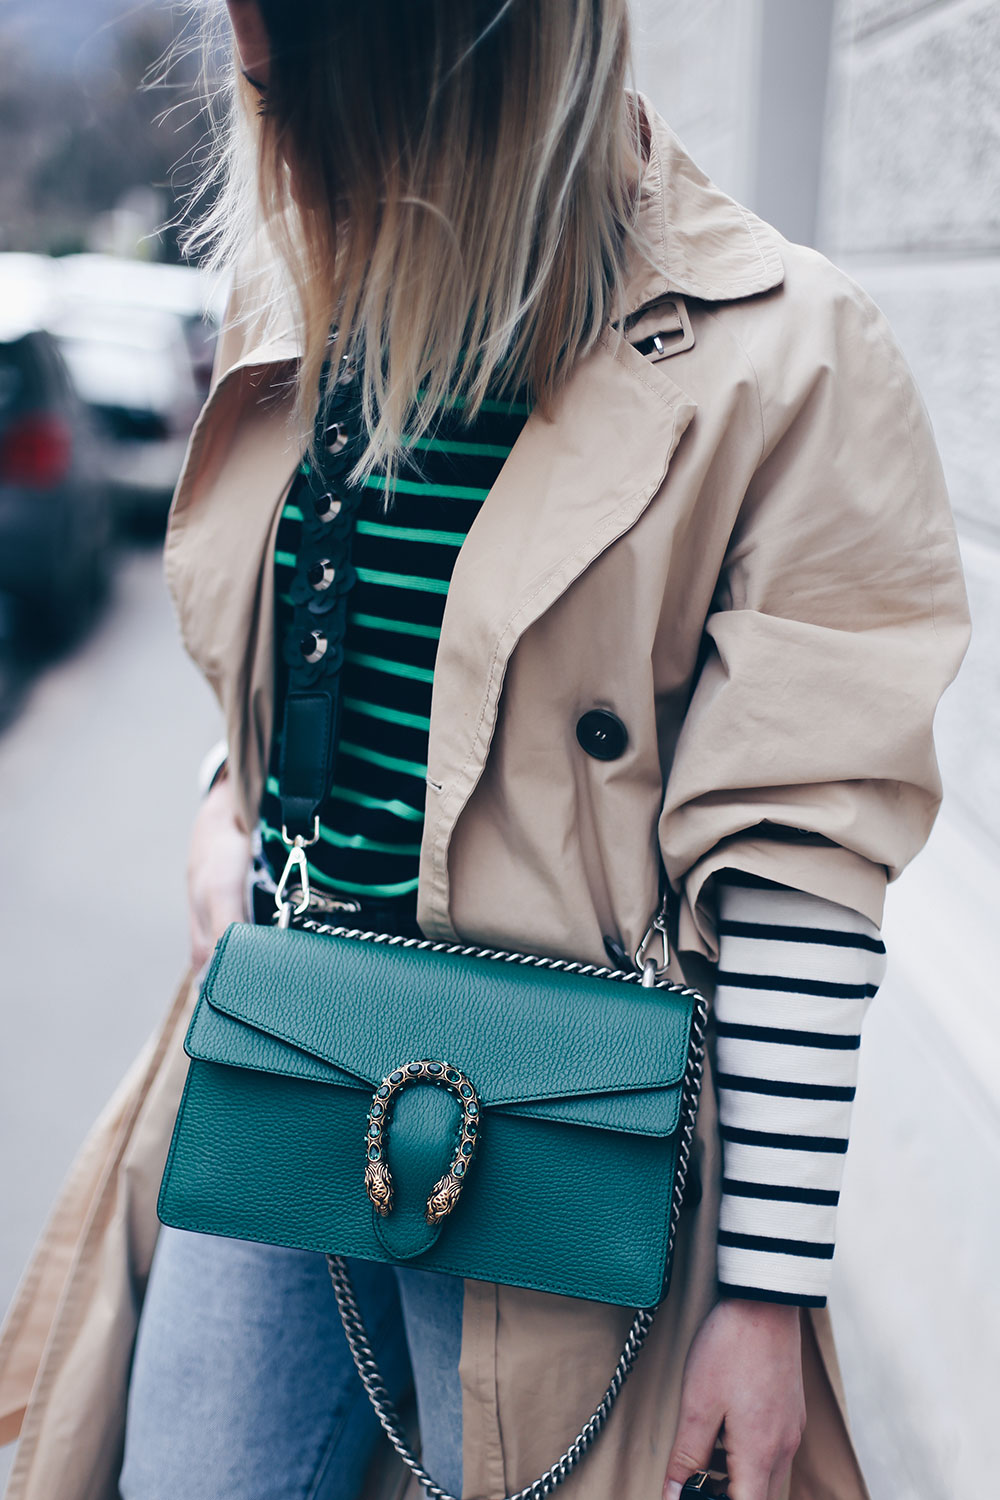 Bold Stripes Trend, How to wear, Streifen Trend, Streetstyle, Modeblog, Frühlings Trends, Fashion Blog, Trenchcoat mit Schleifen, Zara Mules, Gucci Dionysus in Grün, Outfit Blog, Style Blog, www.whoismocca.com